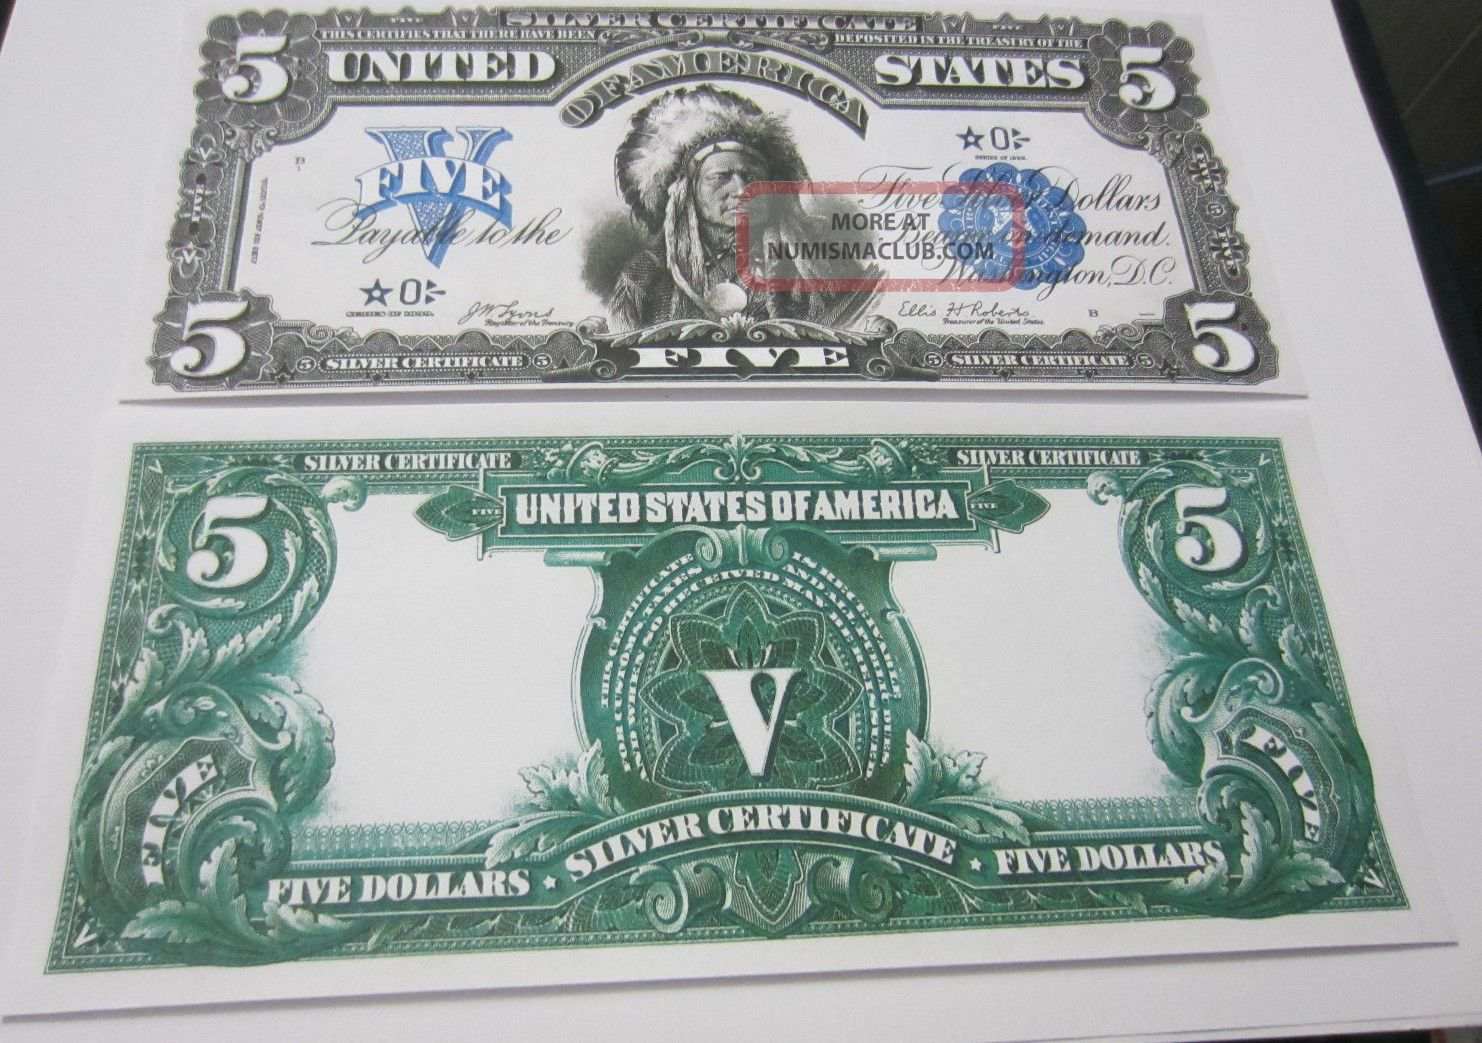 Series 1899 5 Indian Chief Star Note Silver Certificate Copy Replica